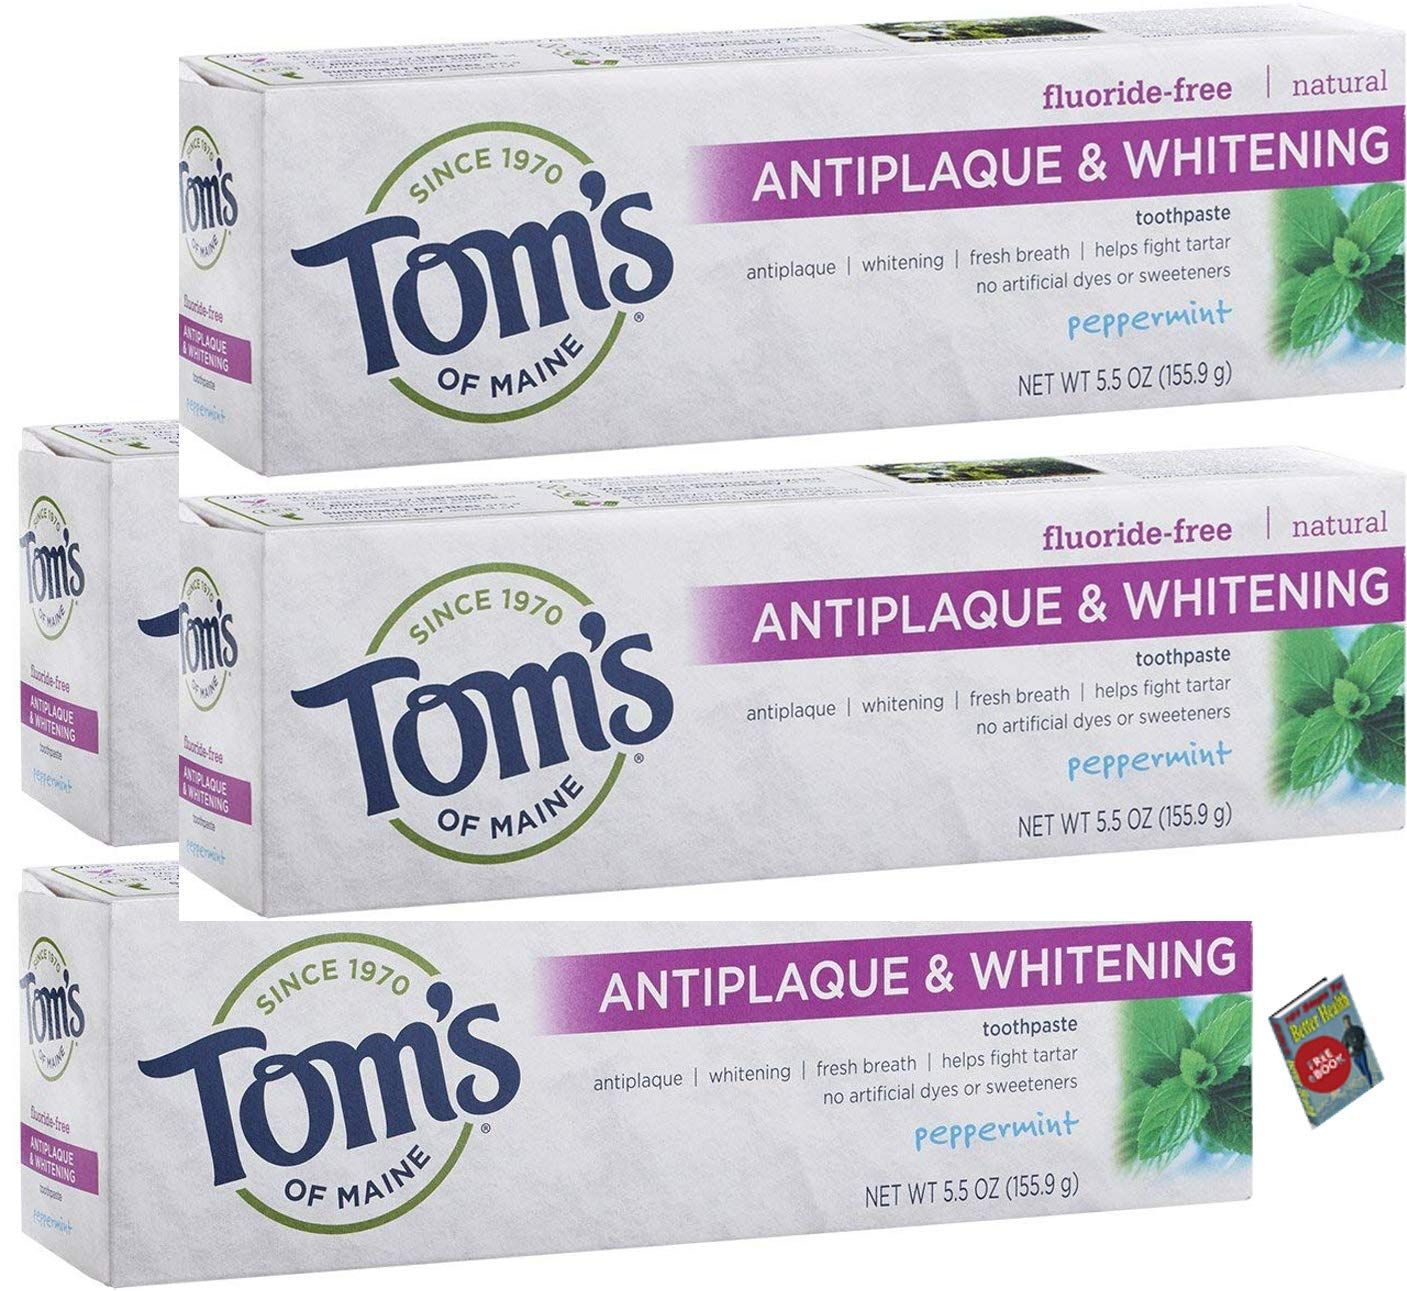 Tom's of Maine Antiplaque and Whitening Fluoride-Free Toothpaste, Peppermint, 5.5 oz, Pack of 4 (Case of 4)